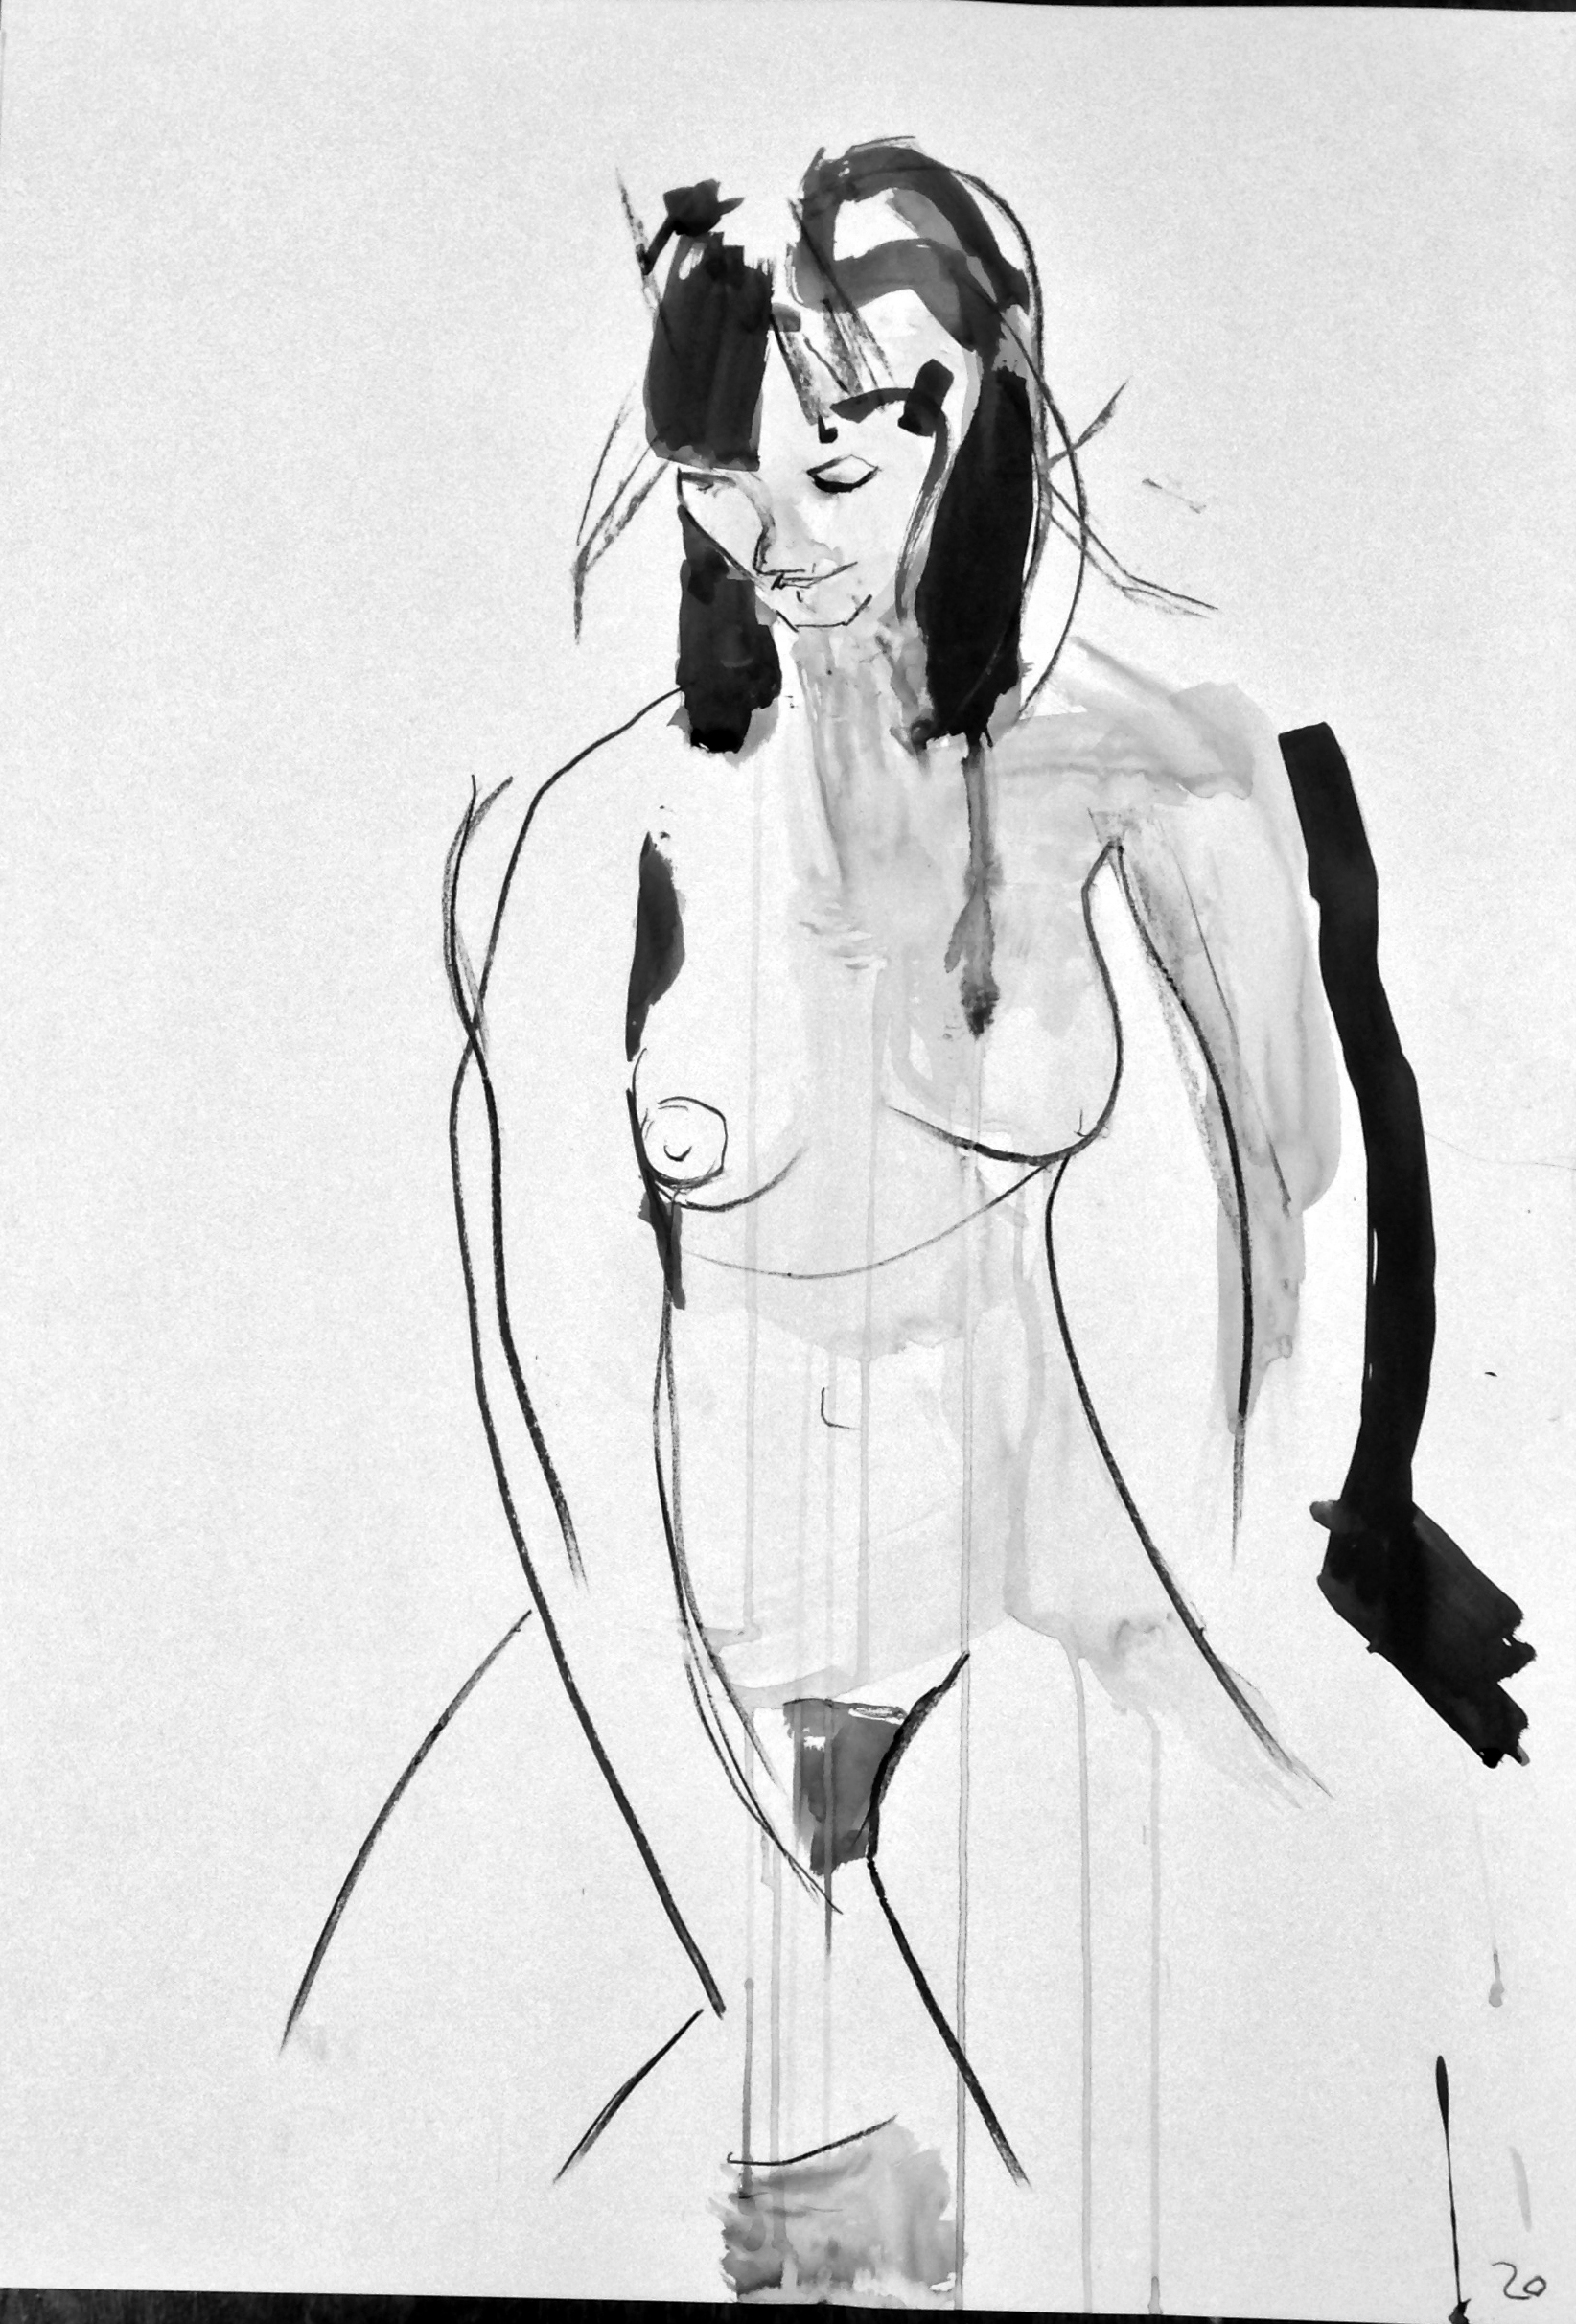 Life Drawing: Week 36 – Less is more